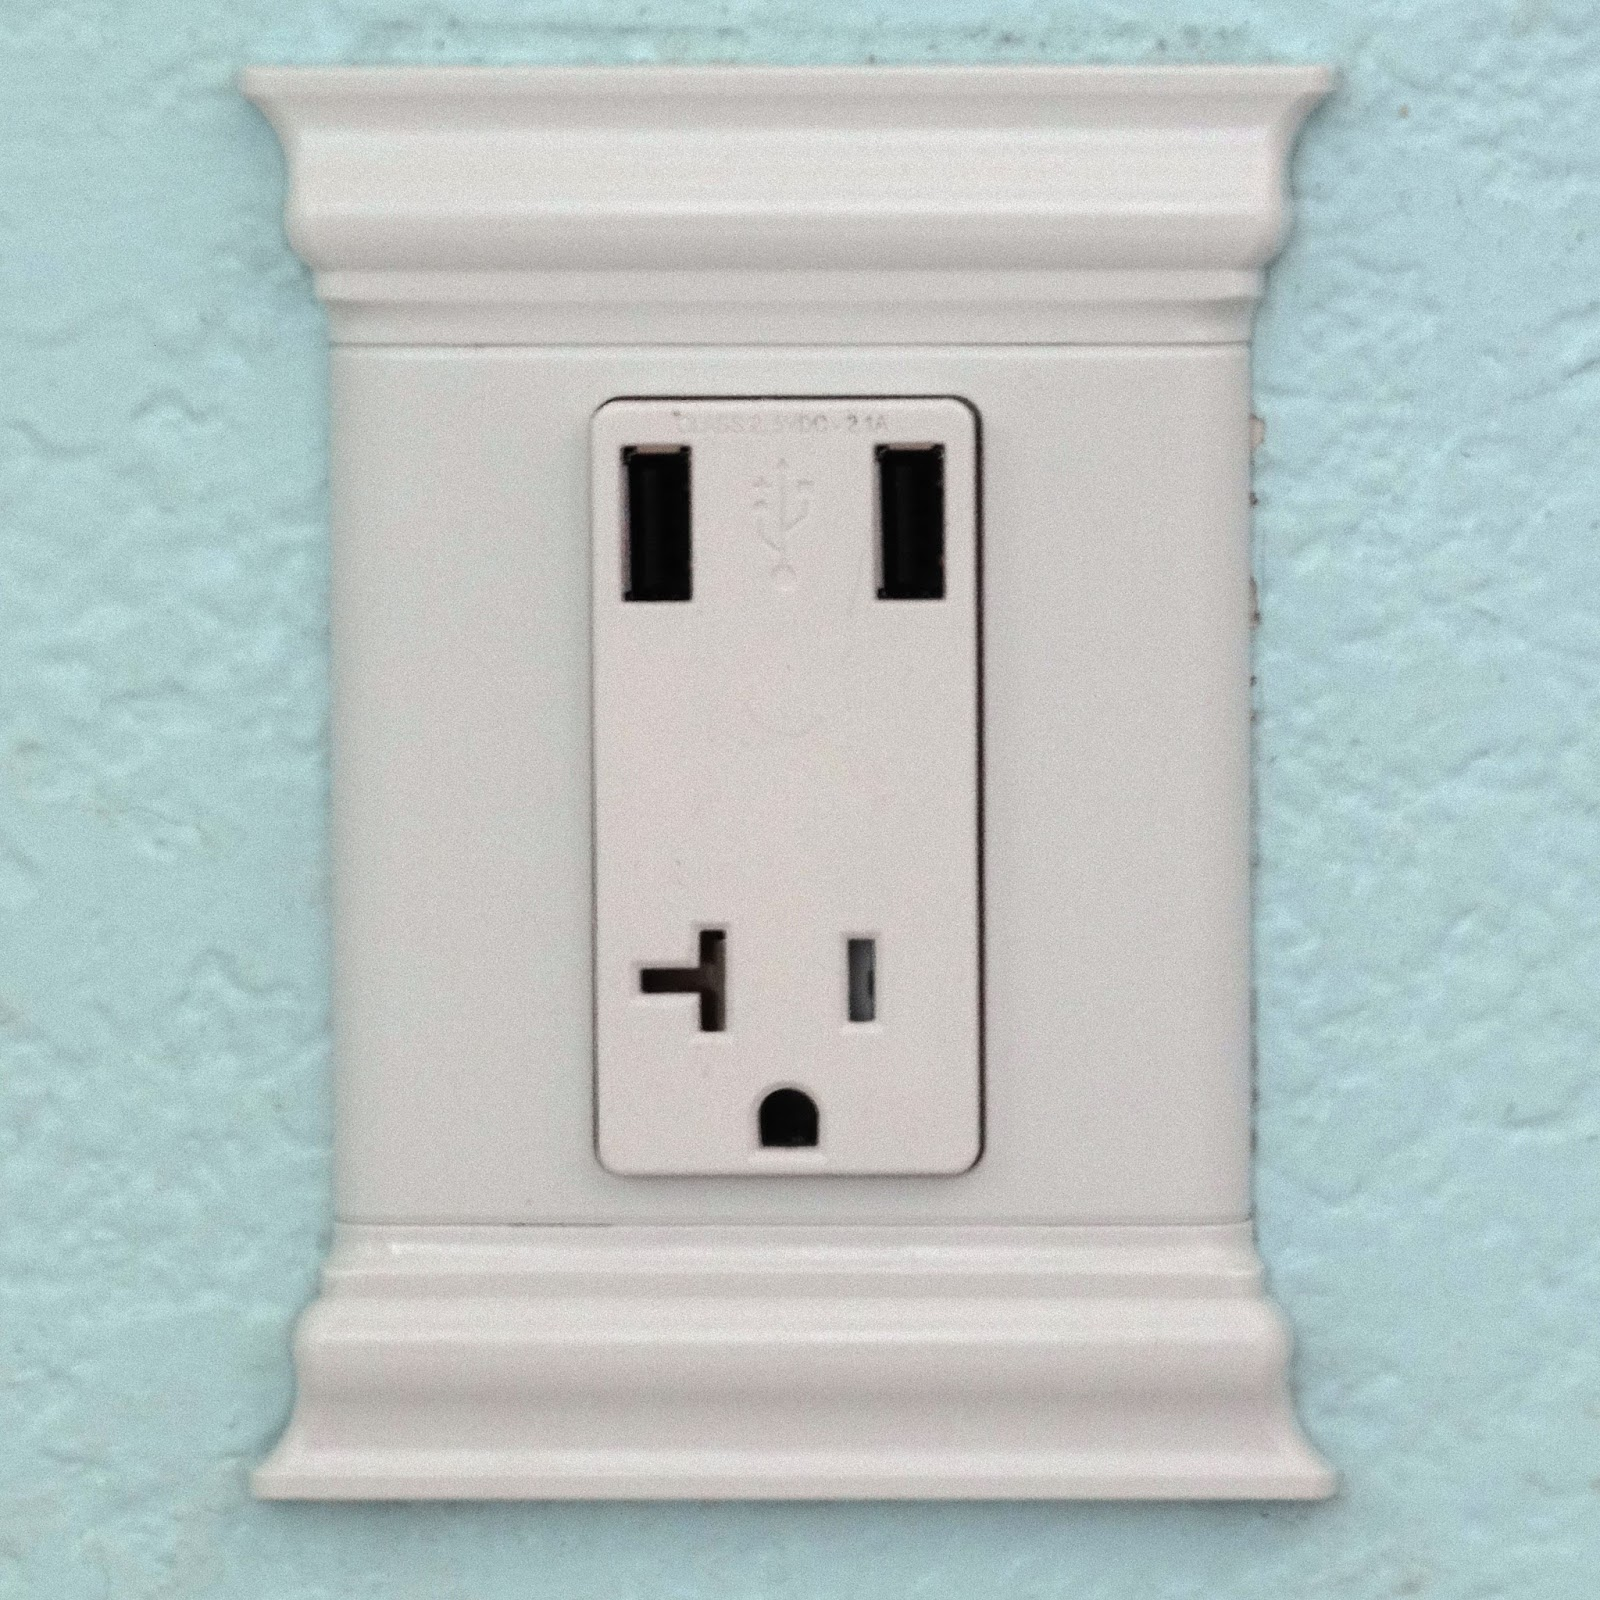 Tech Toy Playground: Leviton TS830 USB wall outlet